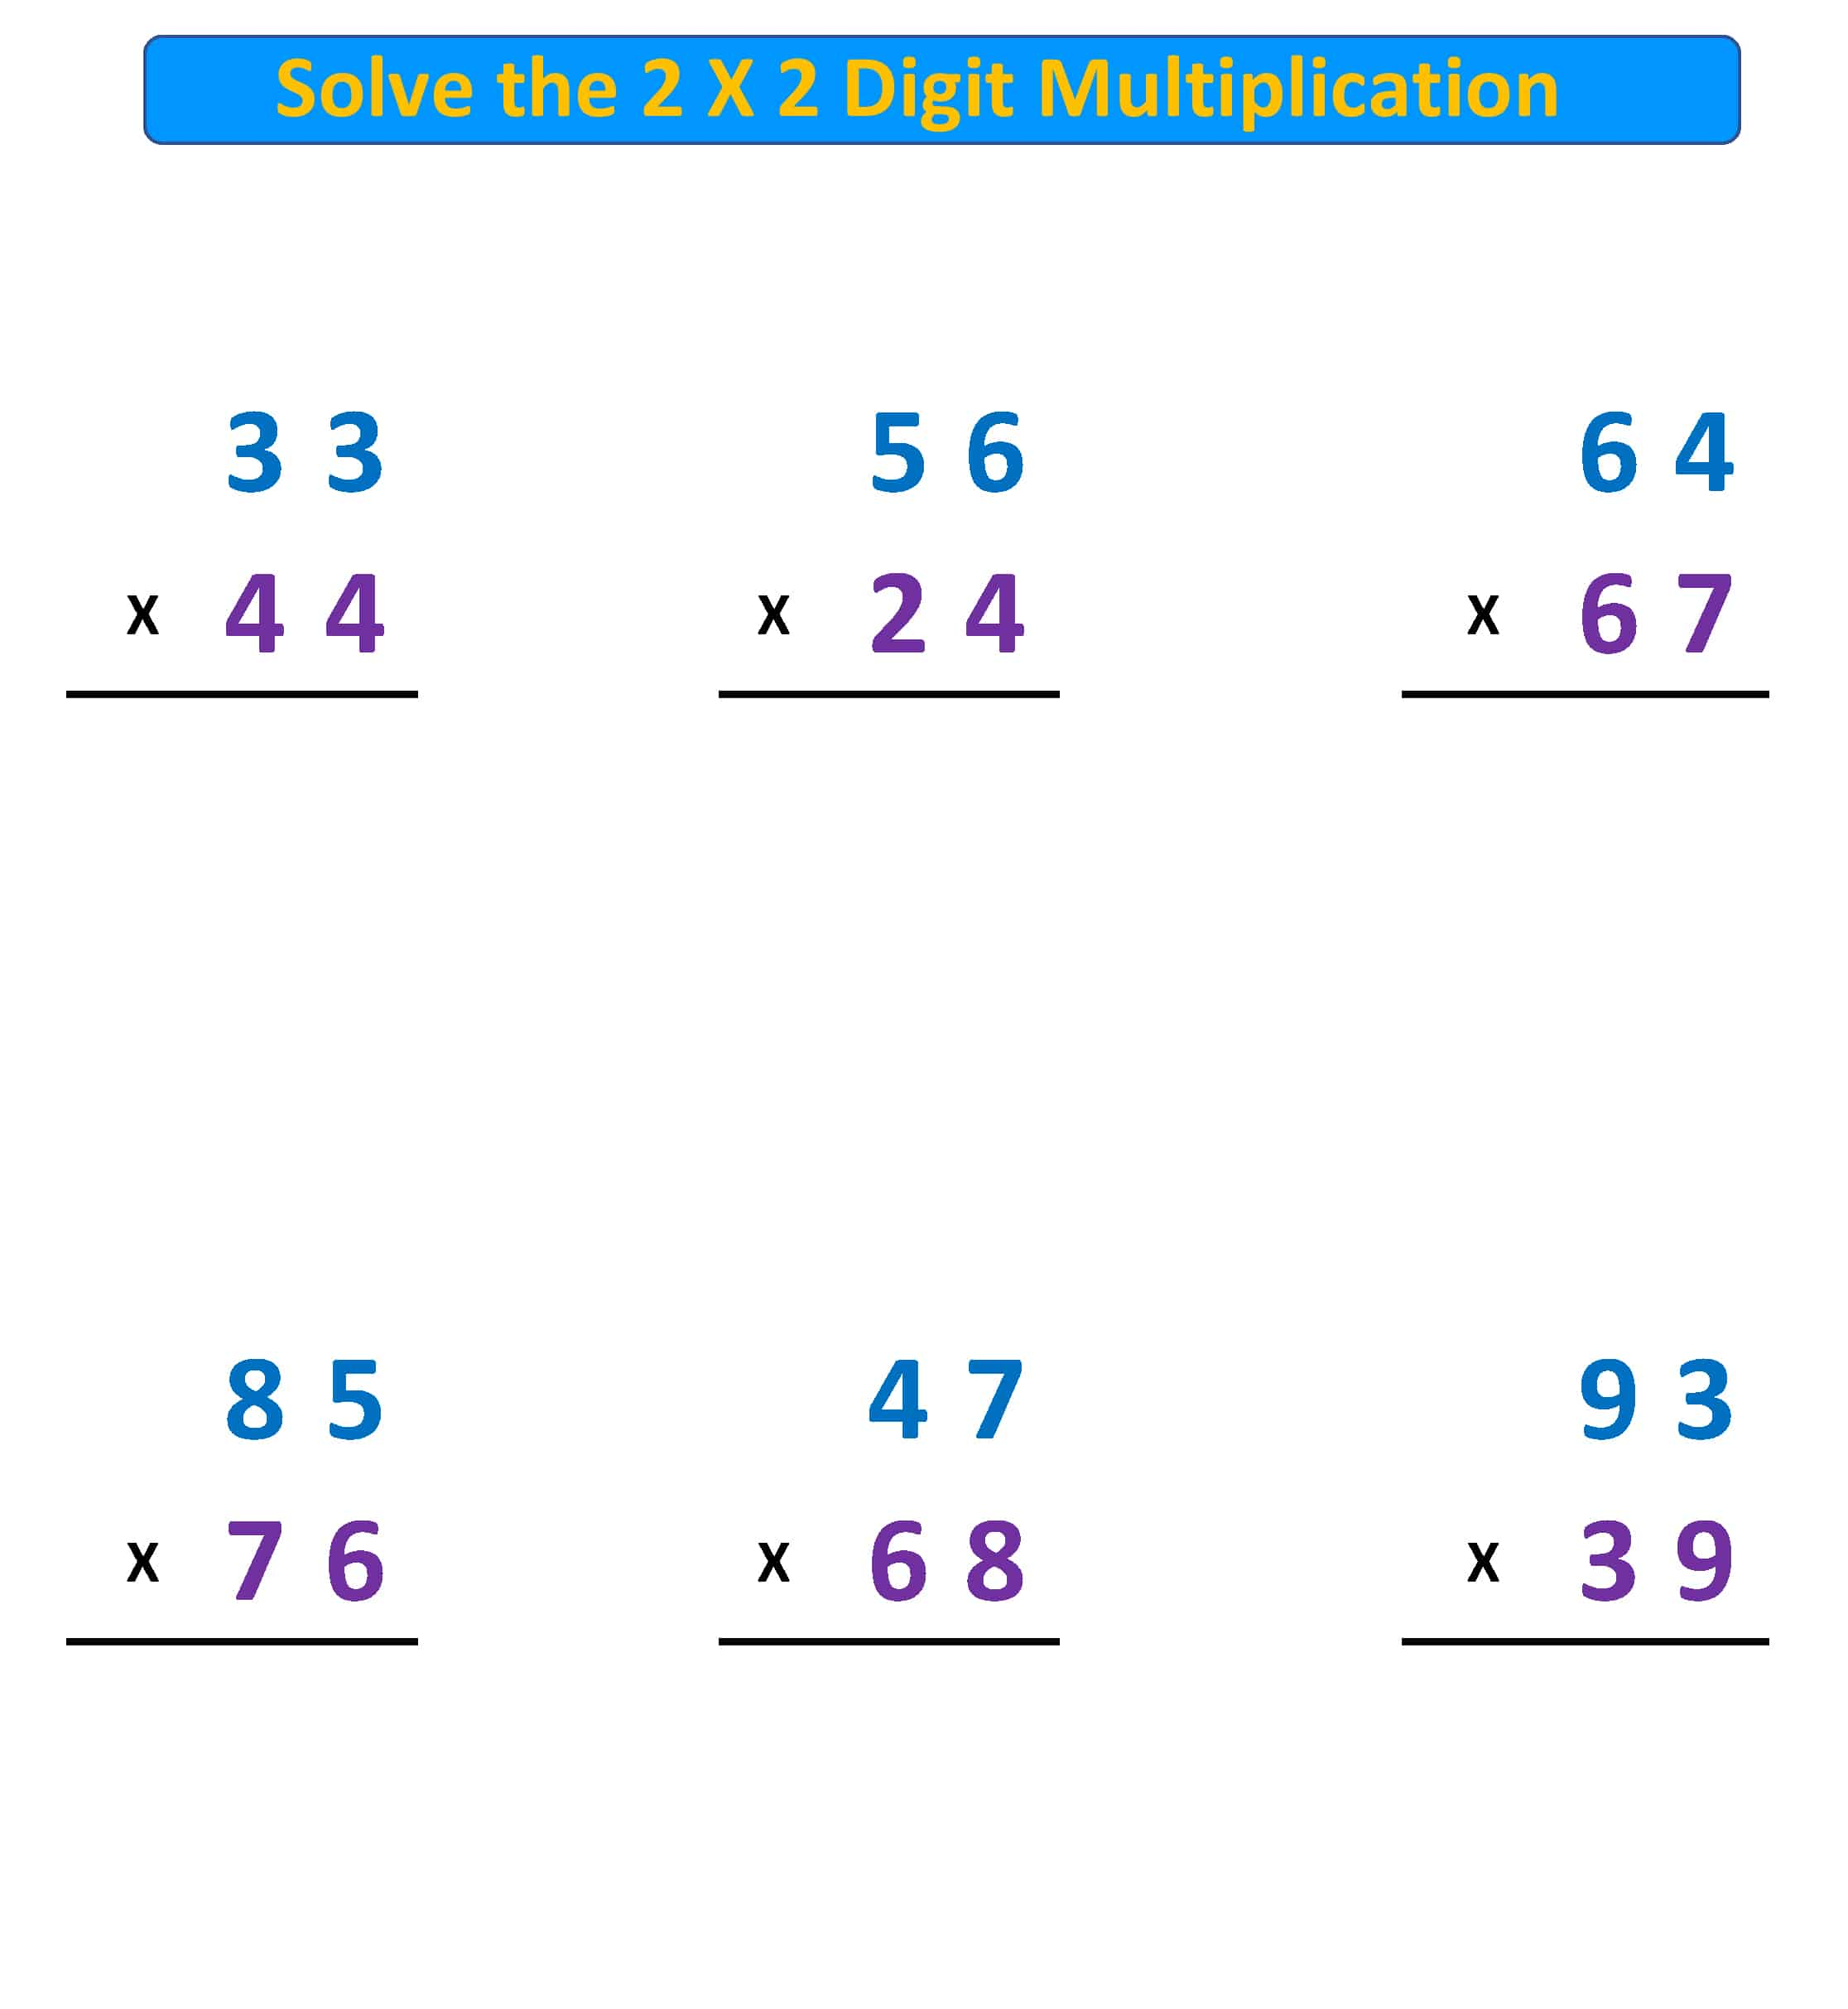 Multiplication 2X2 regroup A